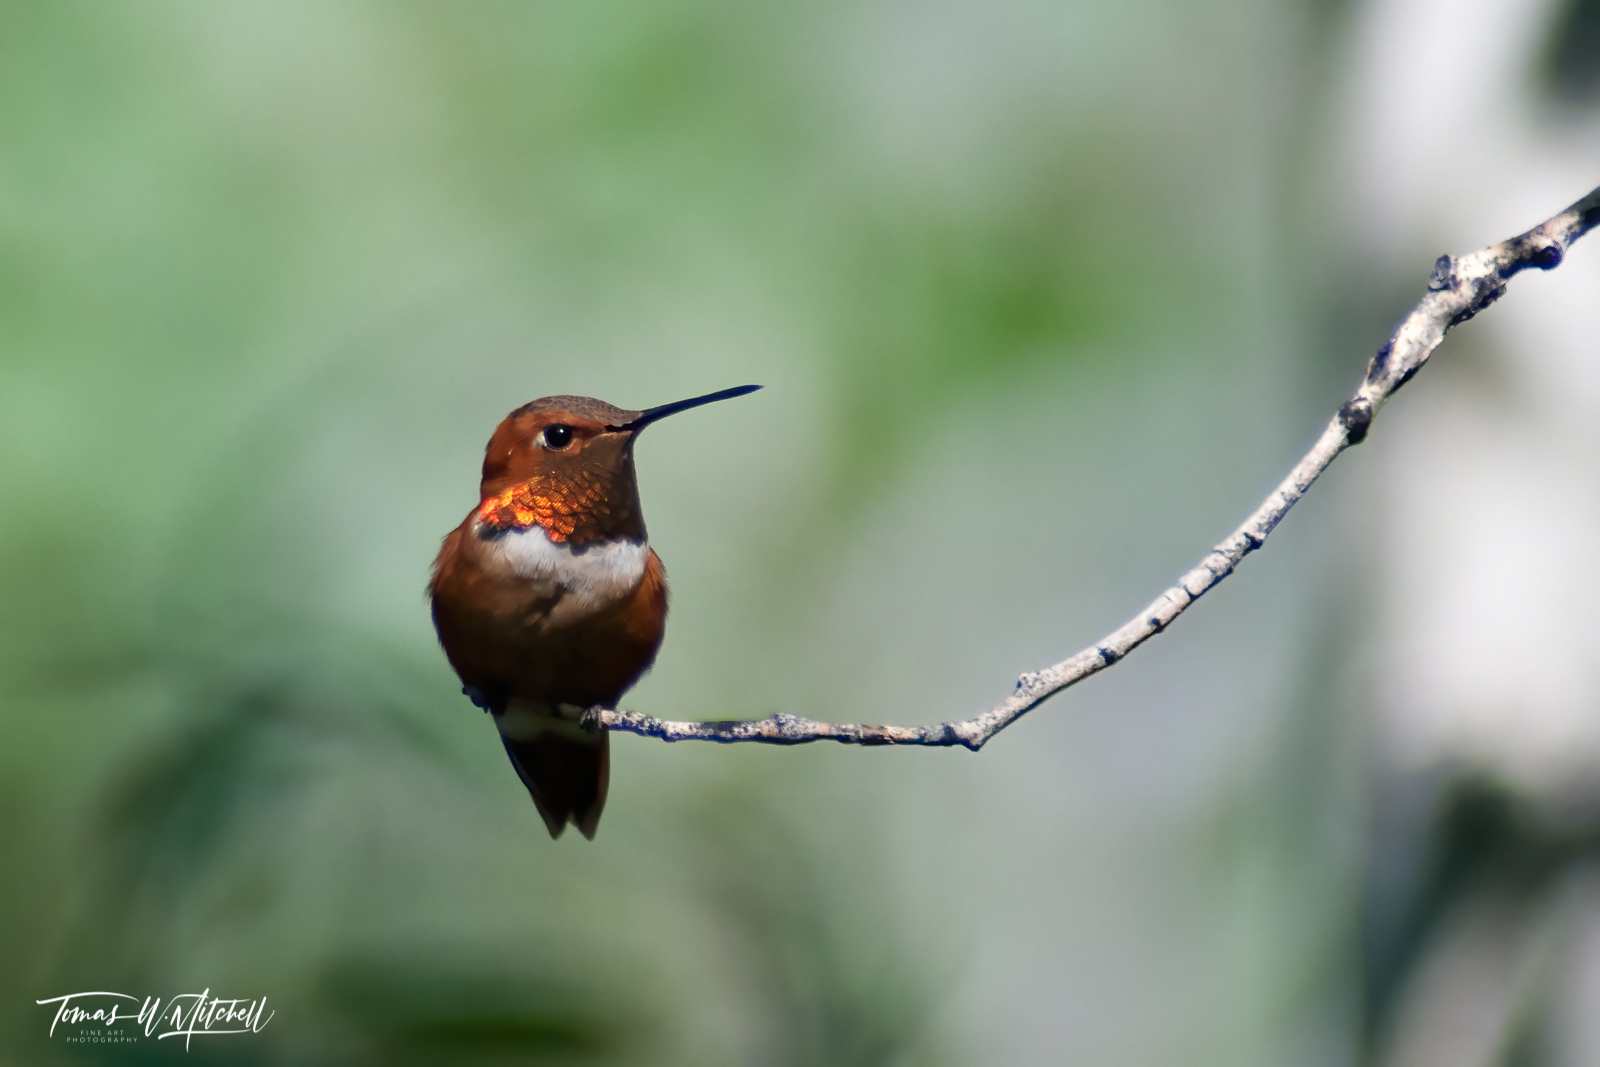 limited edition, fine art, prints, rufous hummingbird, uinta mountains, utah, birds, photograph, aspen trees, photo